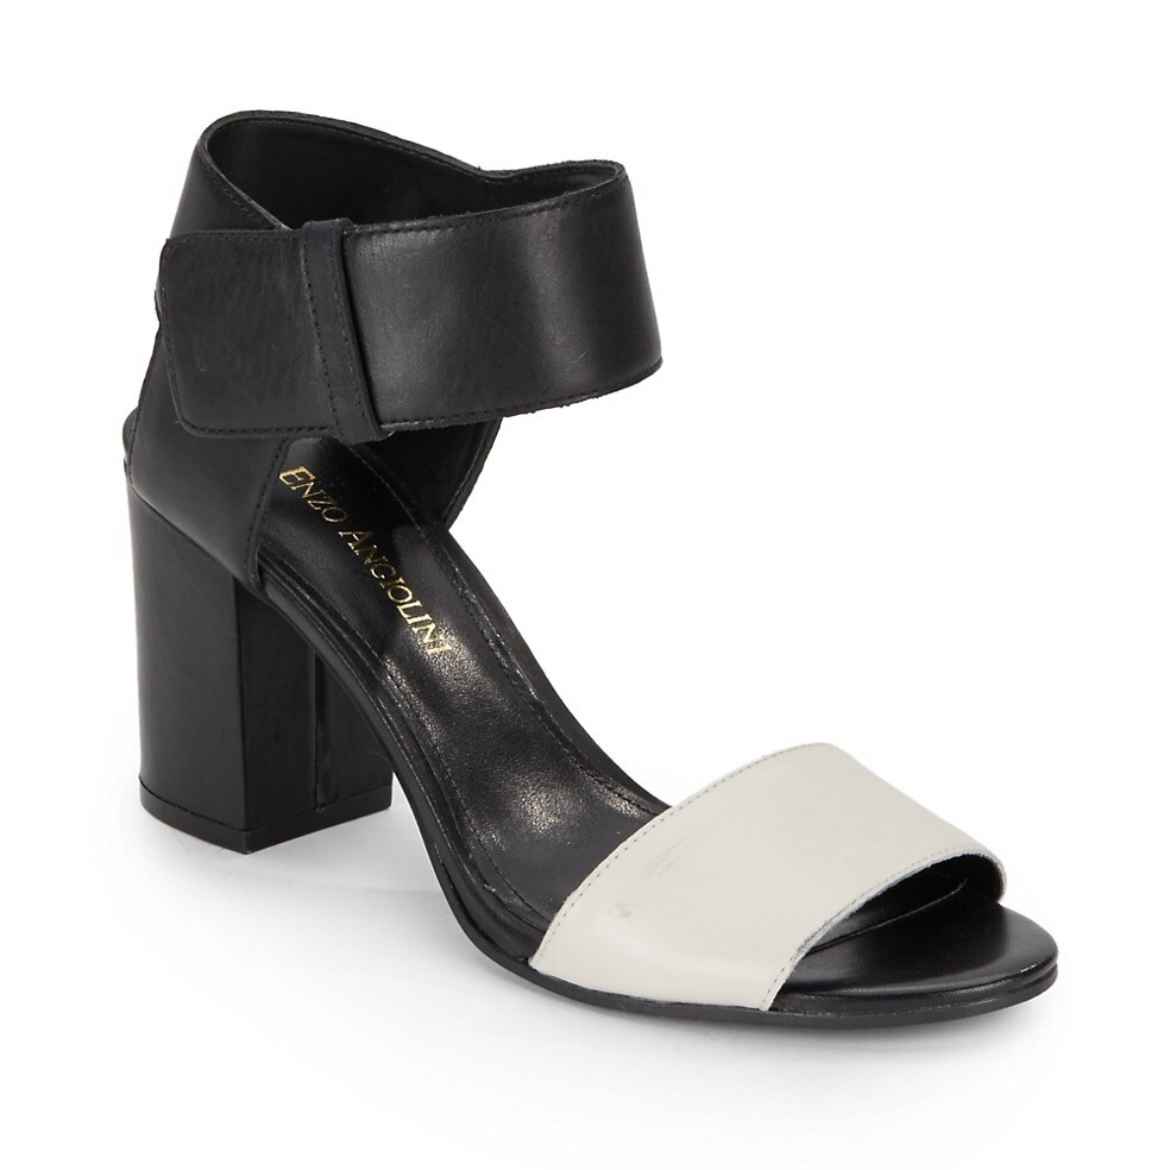 Product Image 1 - •Women's Enzo Angiolini Leather Colorblock